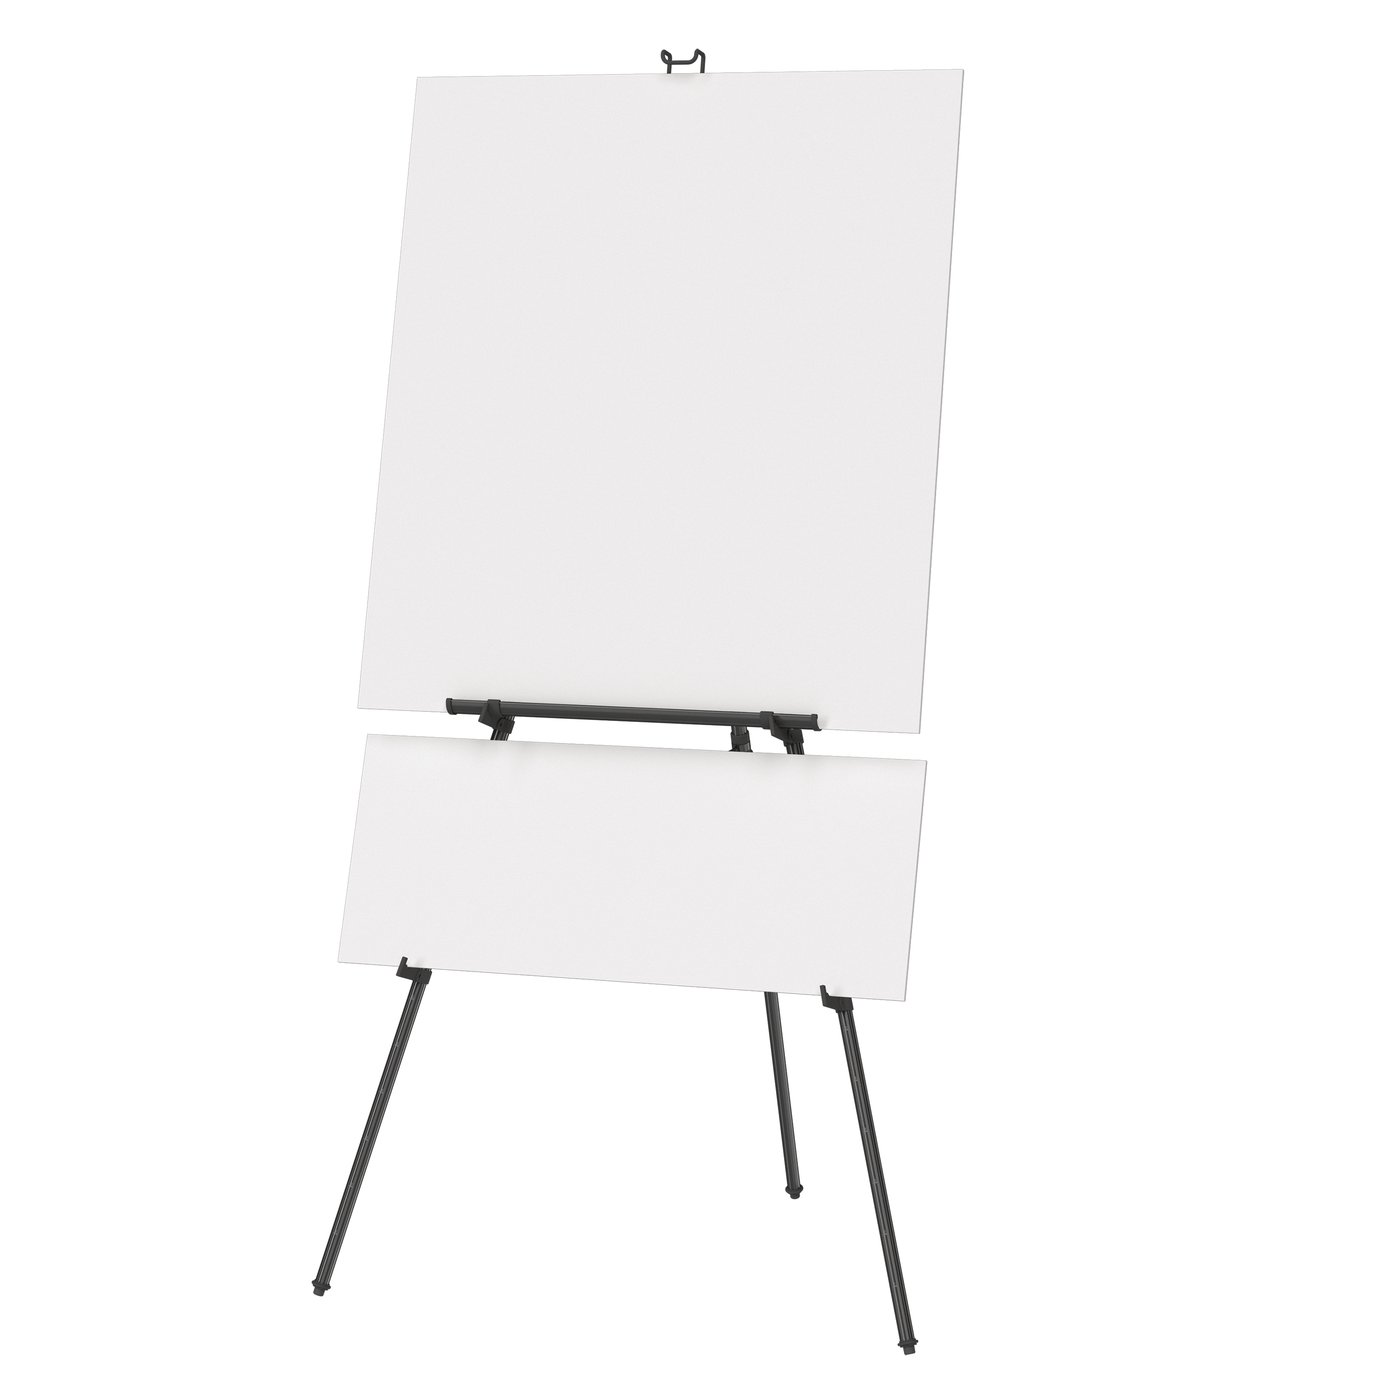 quartet easels display easels quartet aluminum heavy duty